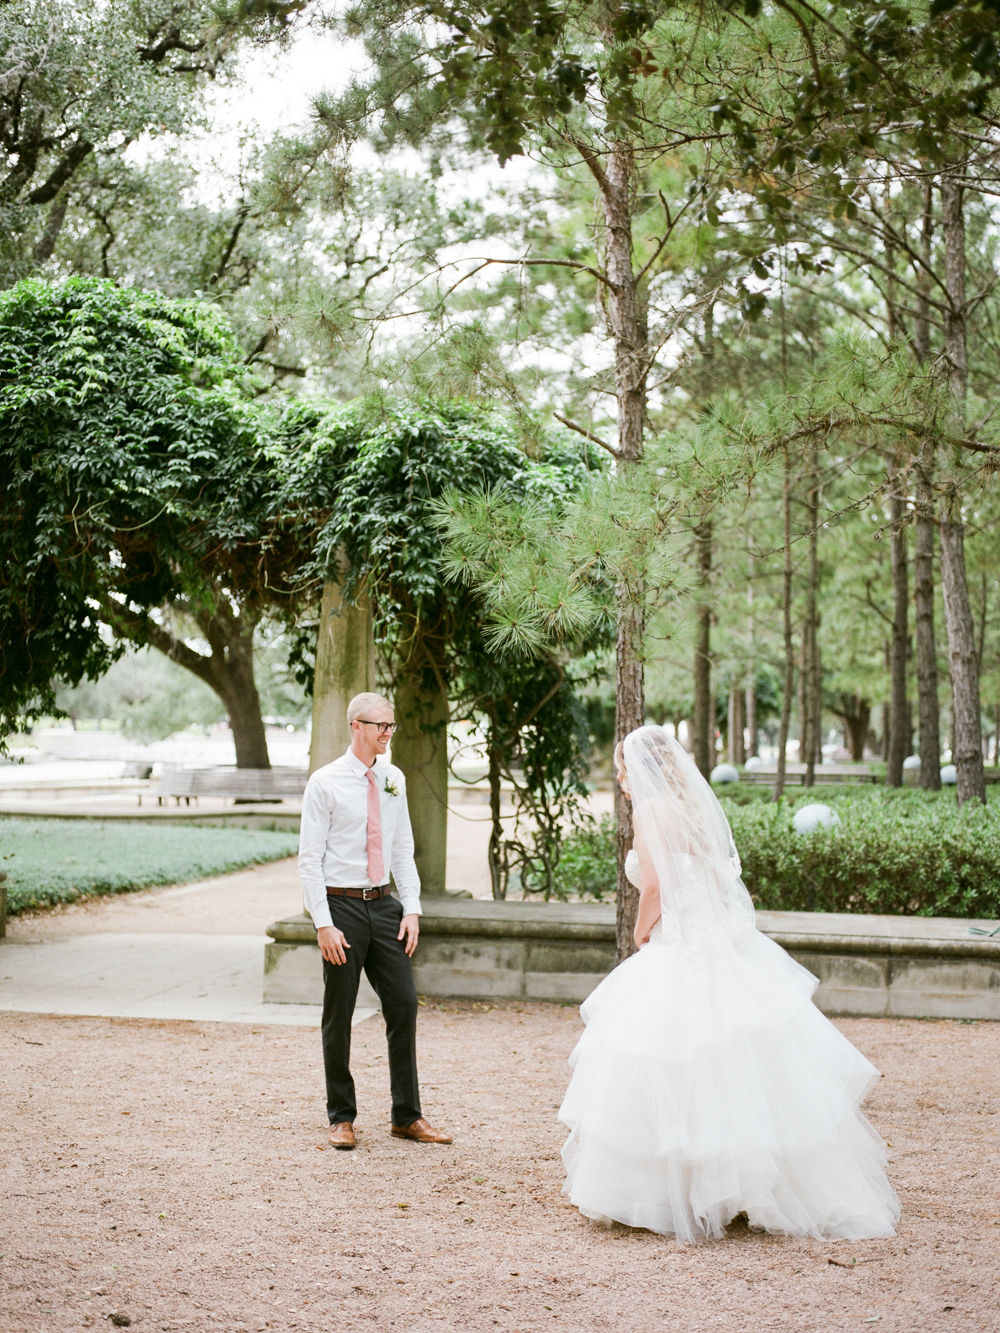 benefits of a first look_wedding photography_wedding photographer_film wedding photographer_Christine Gosch_www.christinegosch.com_Houston, Texas wedding photographer_ Houston, Texas-15.jpg